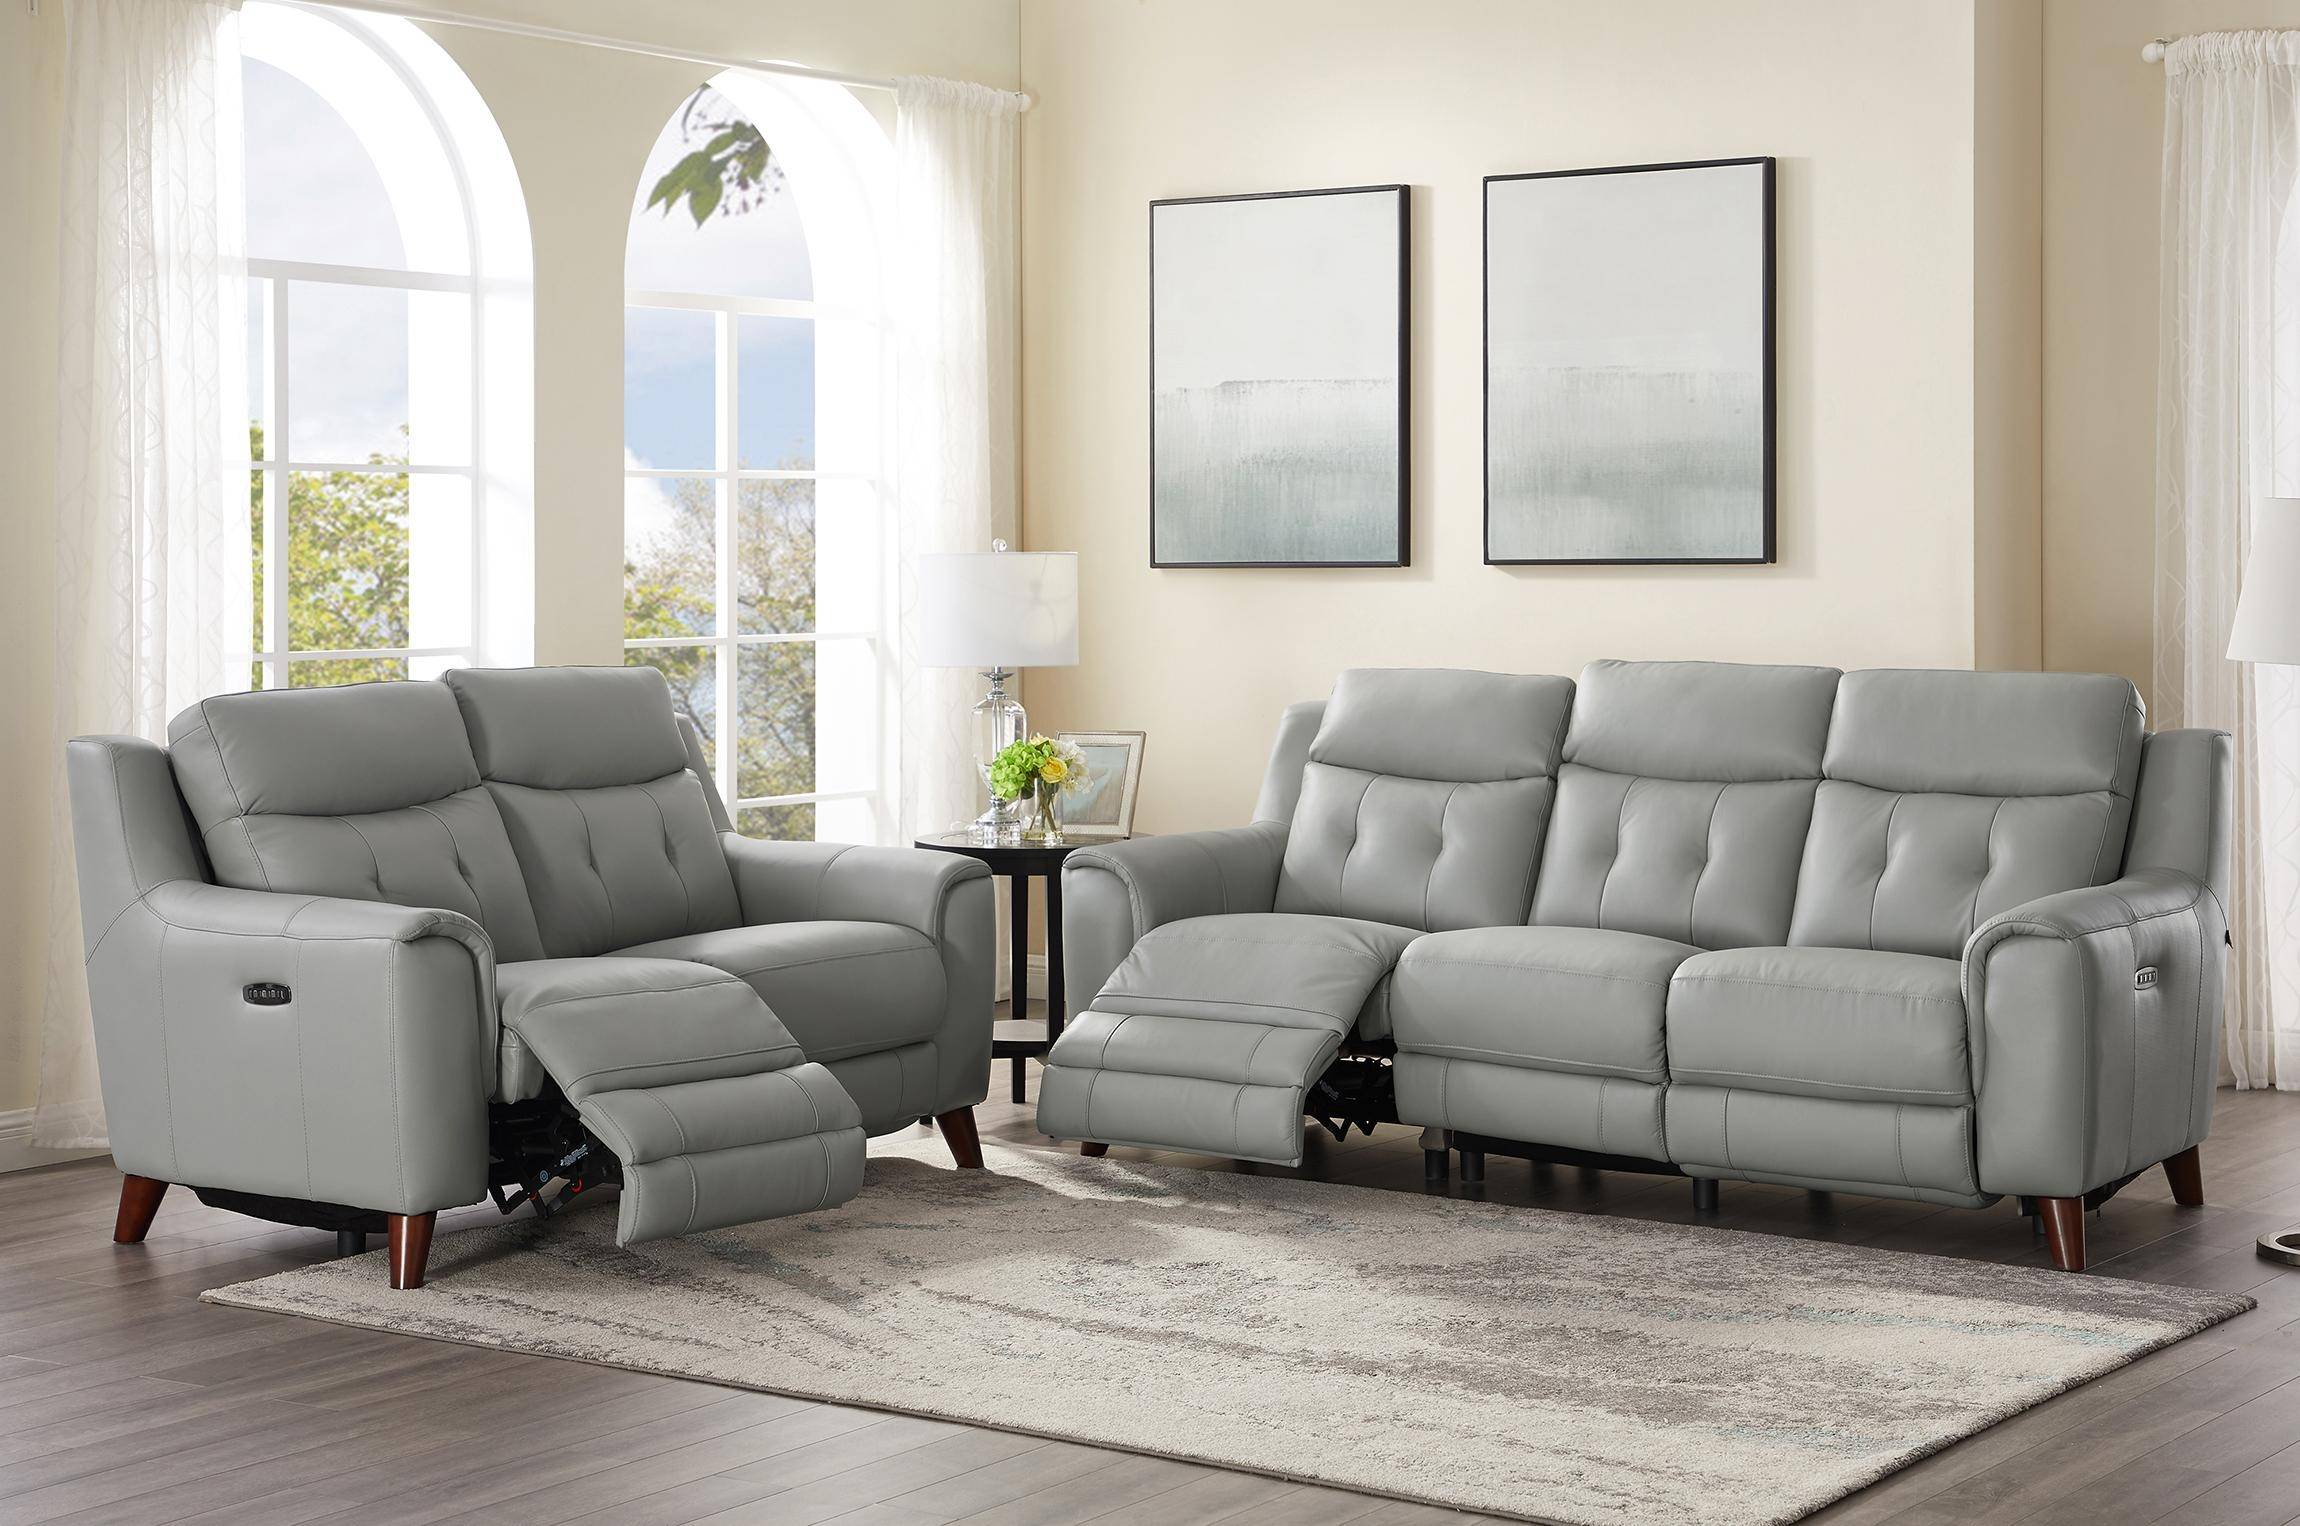 Silver Gray Genuine Leather Power Reclining Sofa Loveseat ...